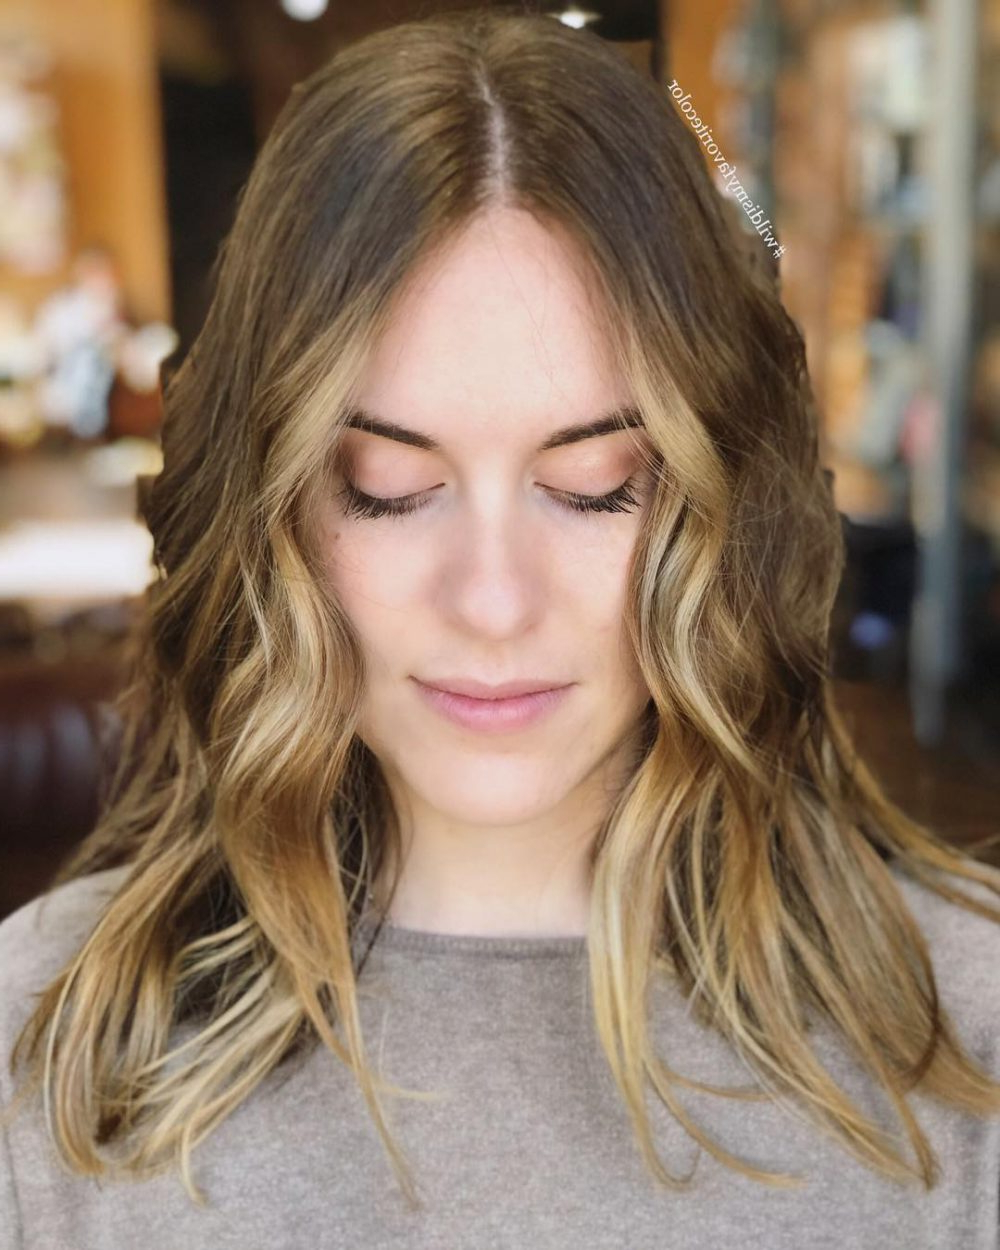 17 Flattering Medium Hairstyles For Round Faces In 2019 In Recent Women Medium Haircuts For Round Faces (Gallery 2 of 20)